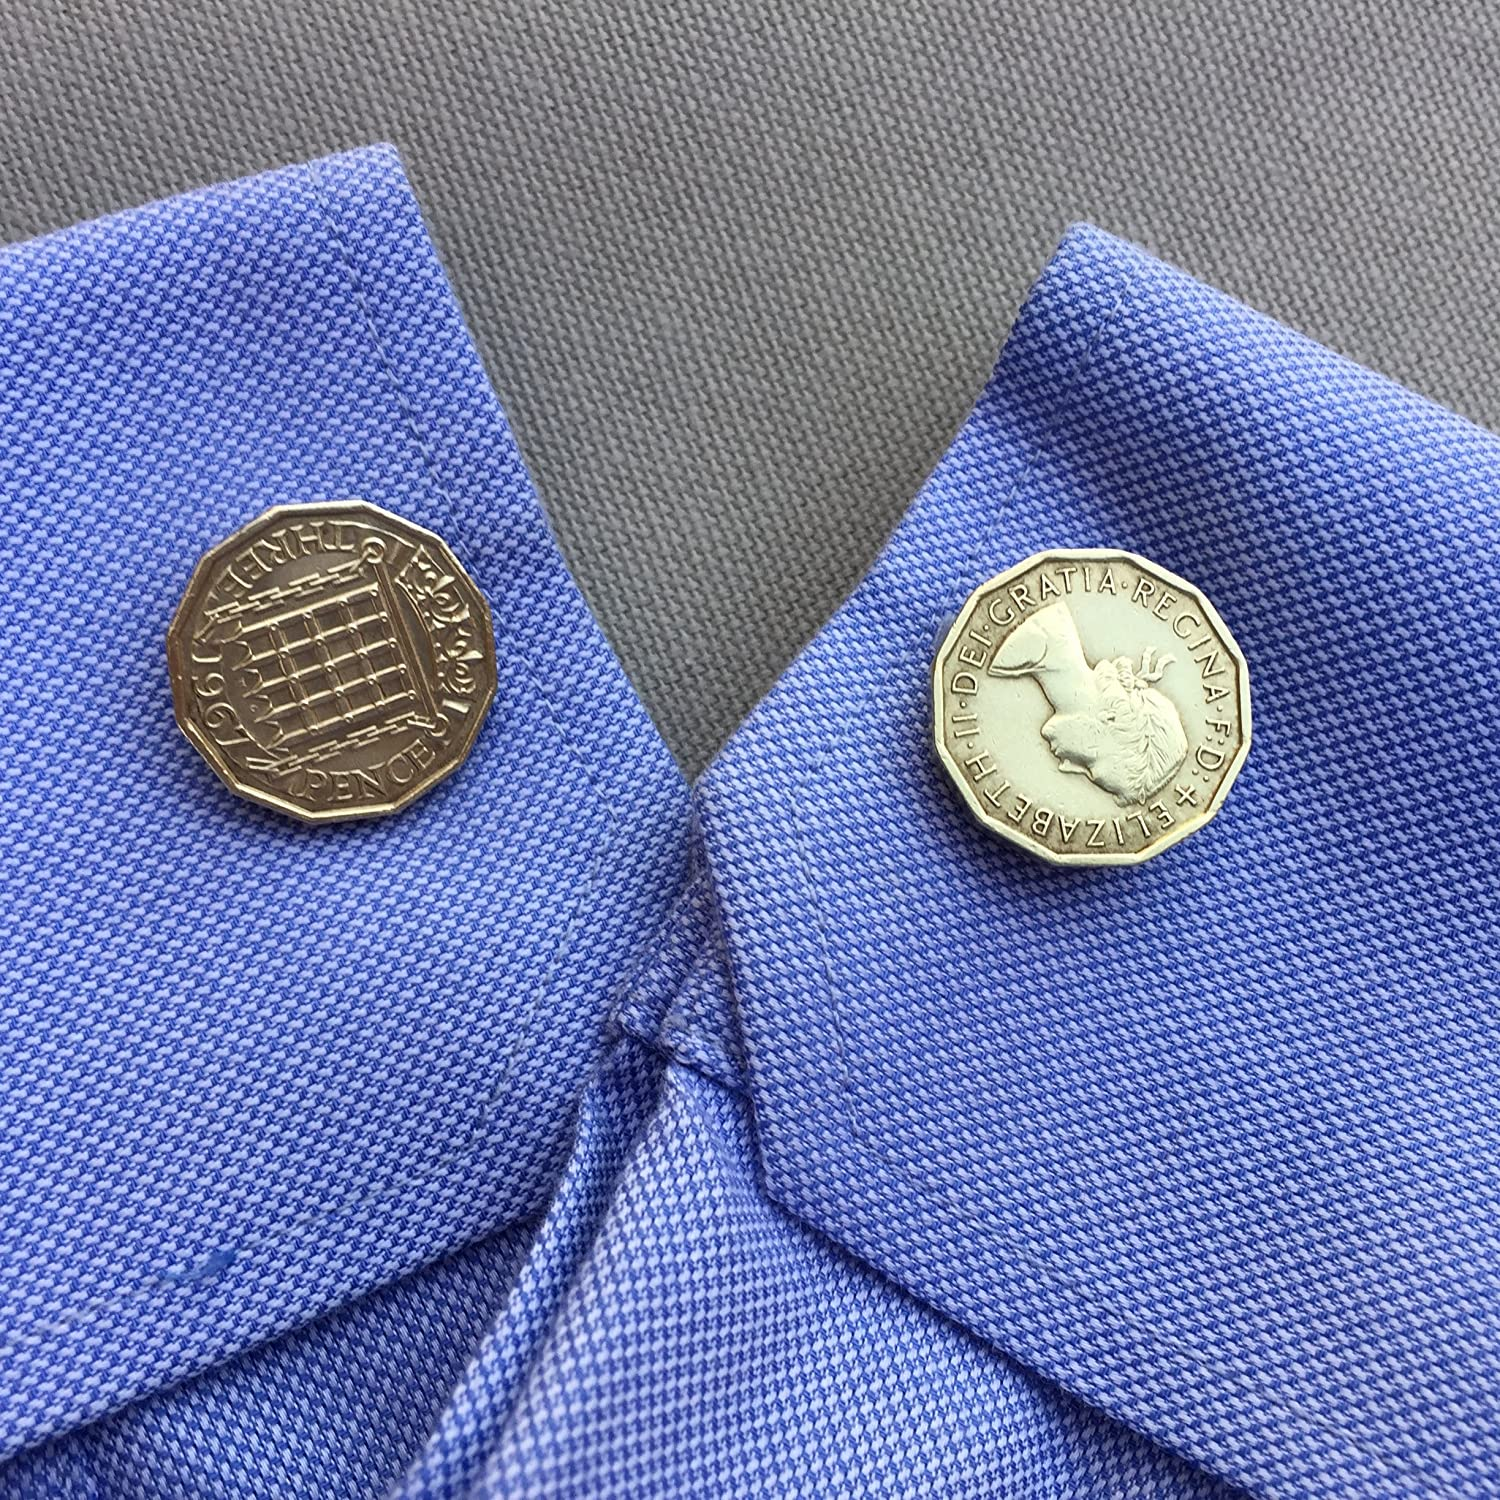 Ammo Gift Box Authentic 3 Pence Threepenny Bit Vintage British Coin Cufflinks